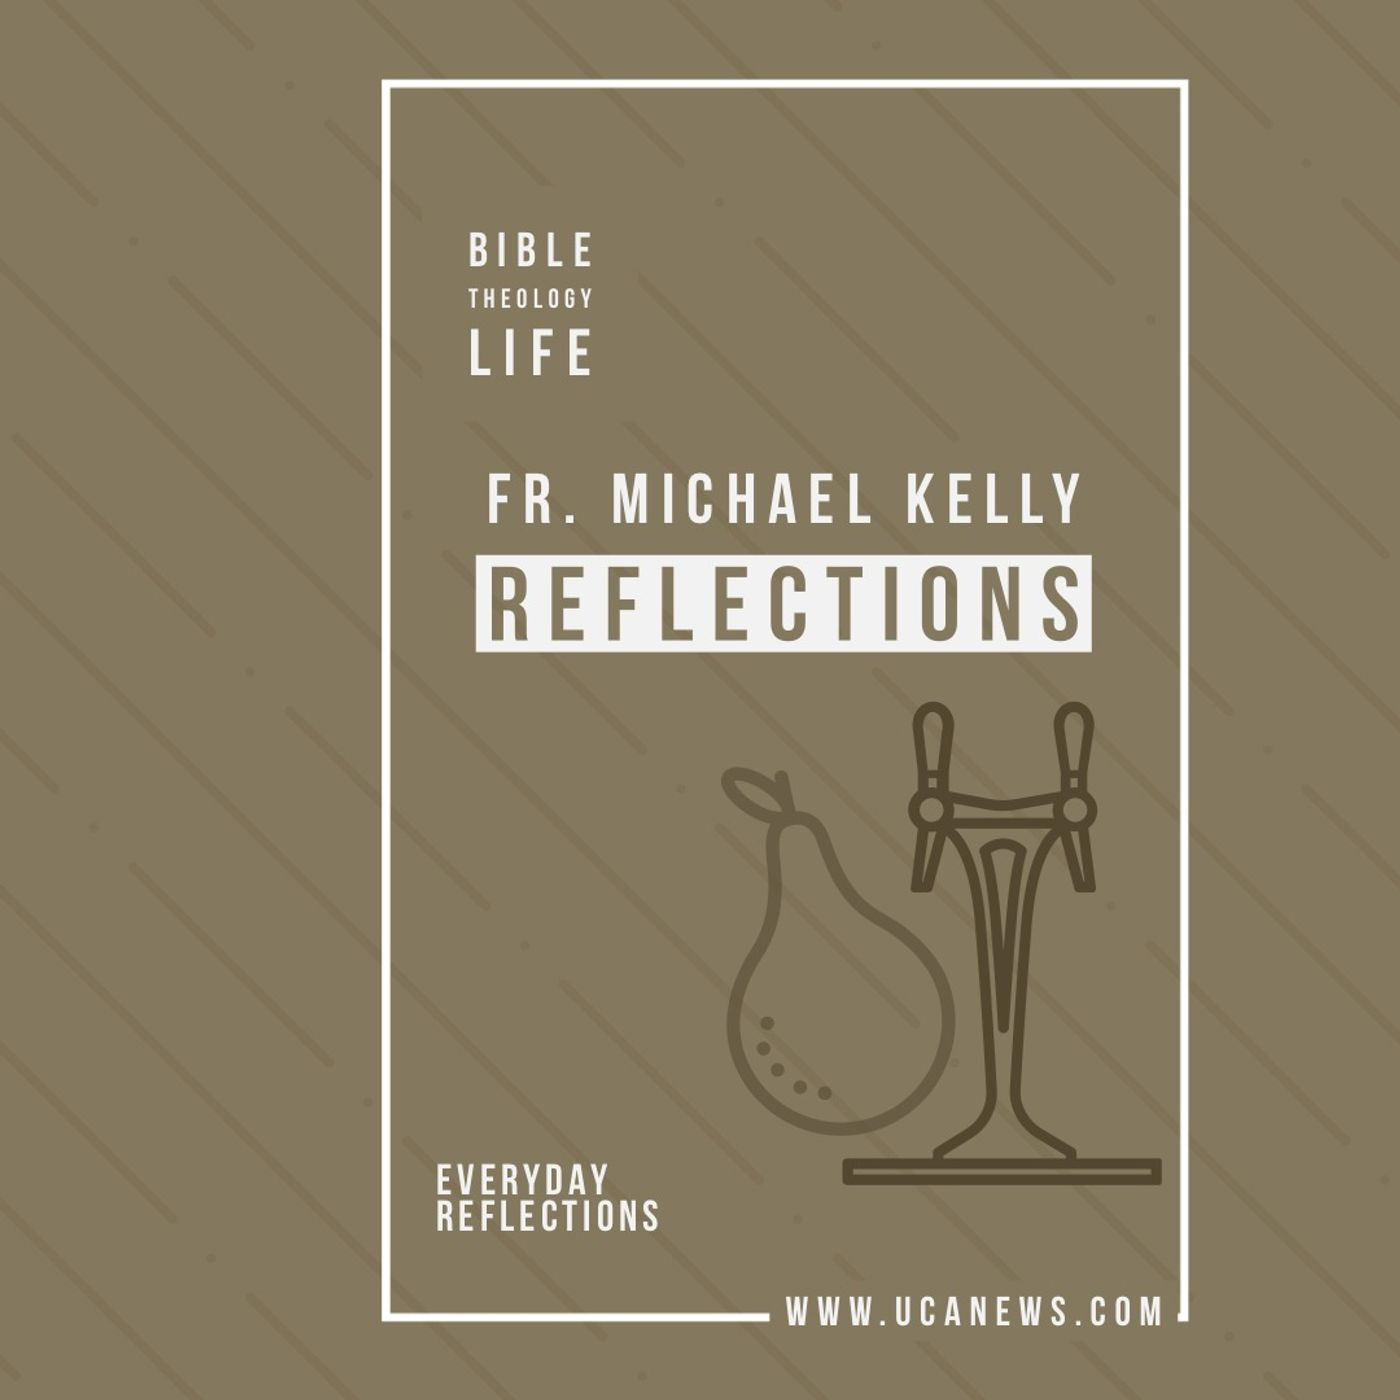 Reflections with Fr. Michael Kelly - Wednesday 24 Feb, 2021